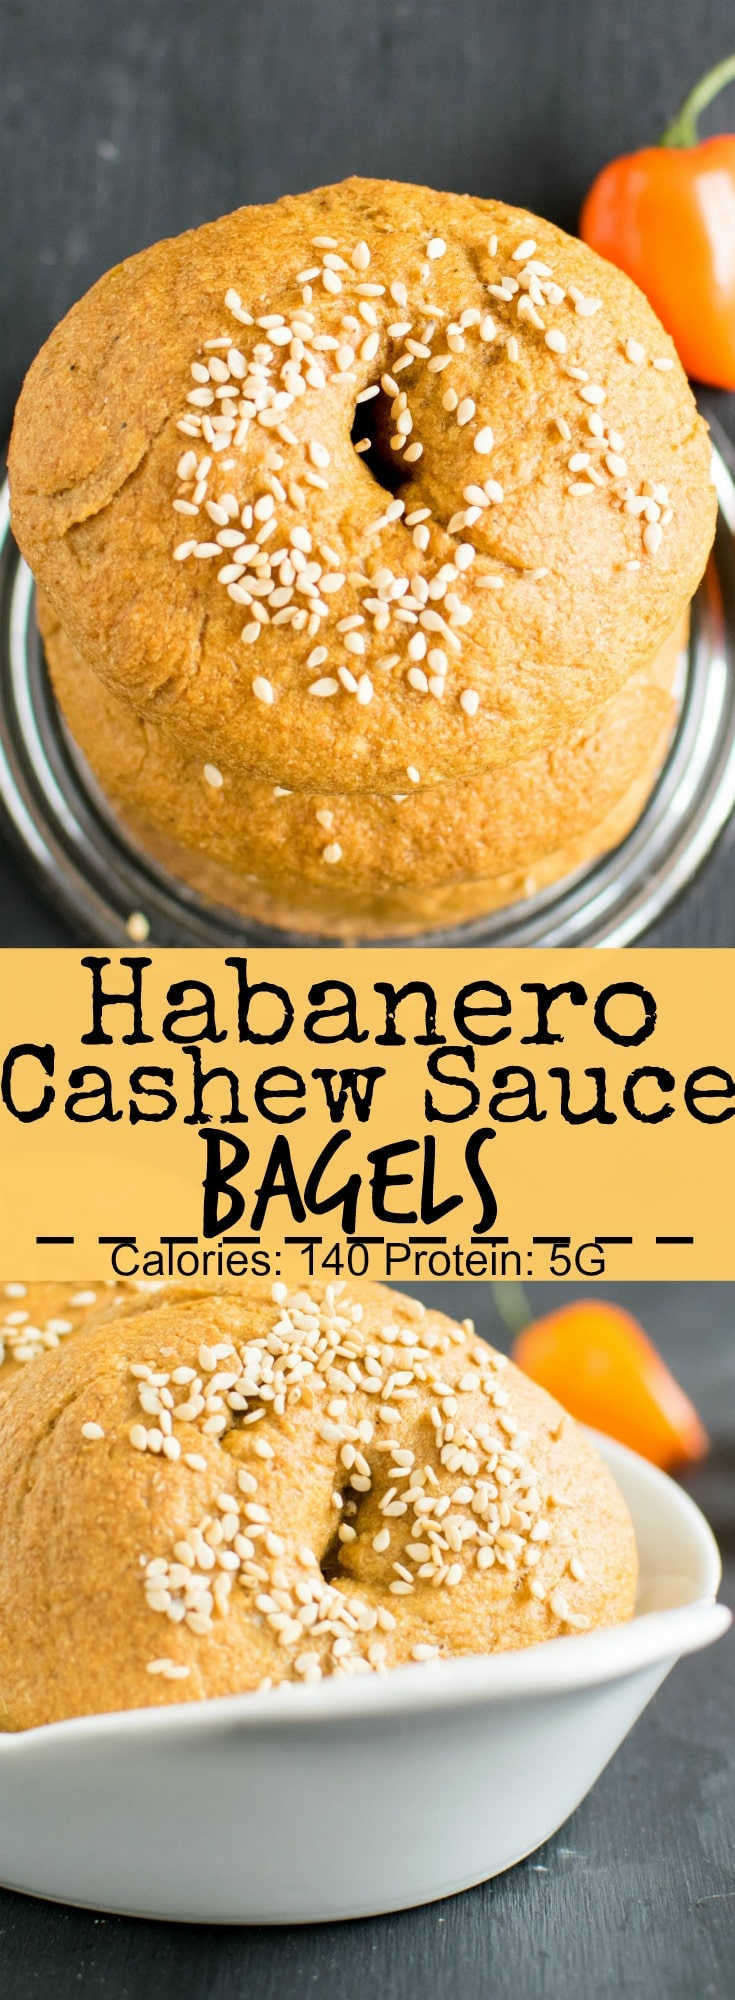 Habanero Cashew Sauce Bagels are moist, soft and fluffy with mild essence of fresh habanero peppers. These vegan bagels tastes outstanding and are so easy that even a new baker can enjoy these | kiipfit.com